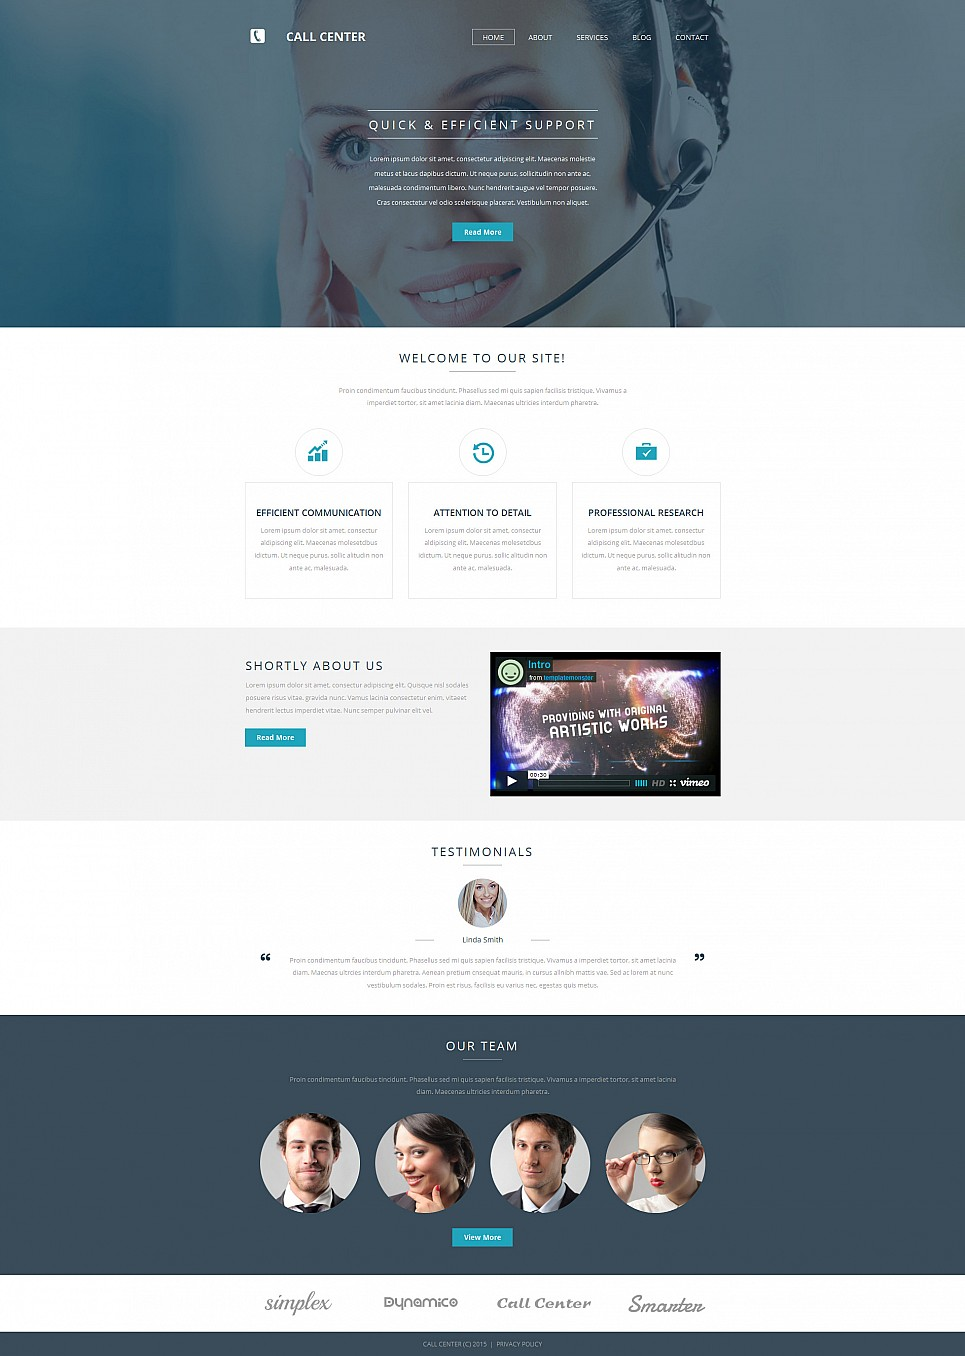 Online Call Center Website Theme - image